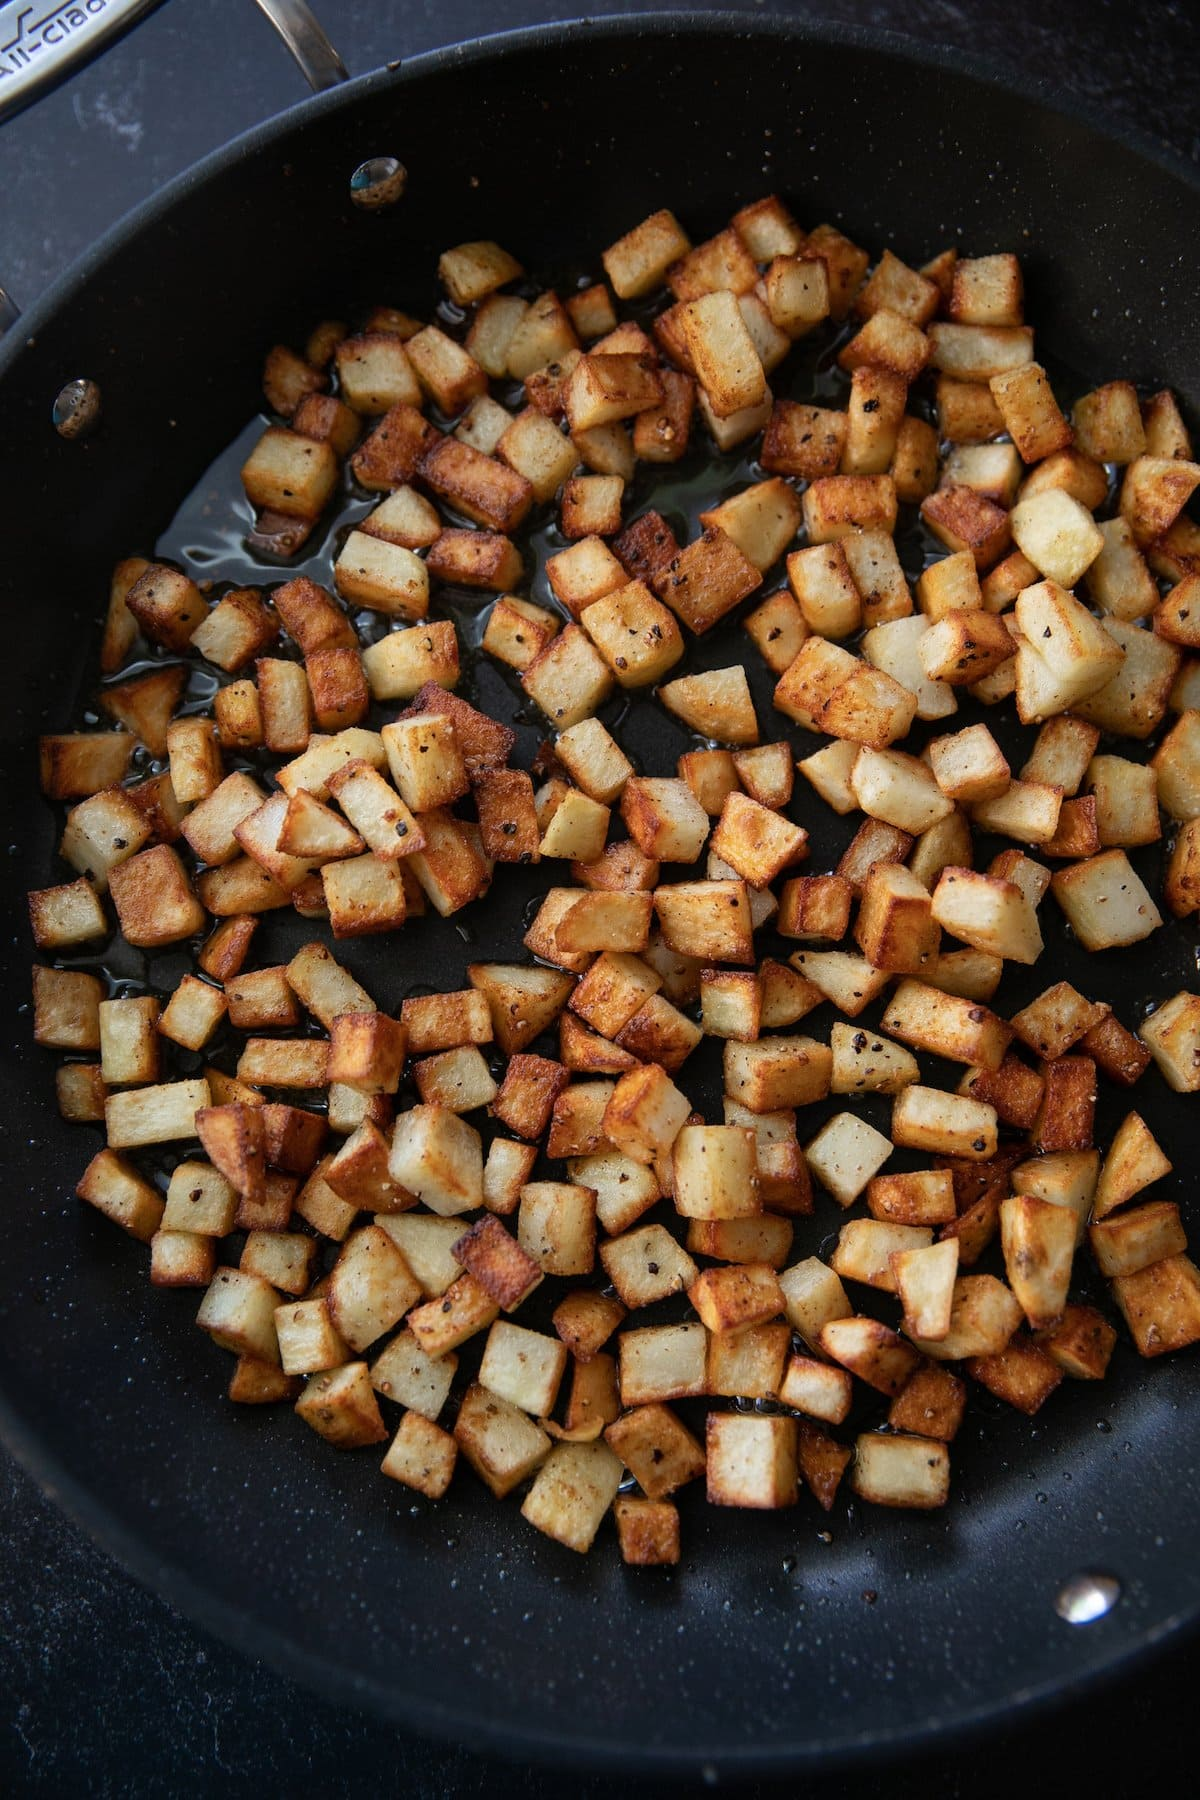 potatoes being fried in a pan